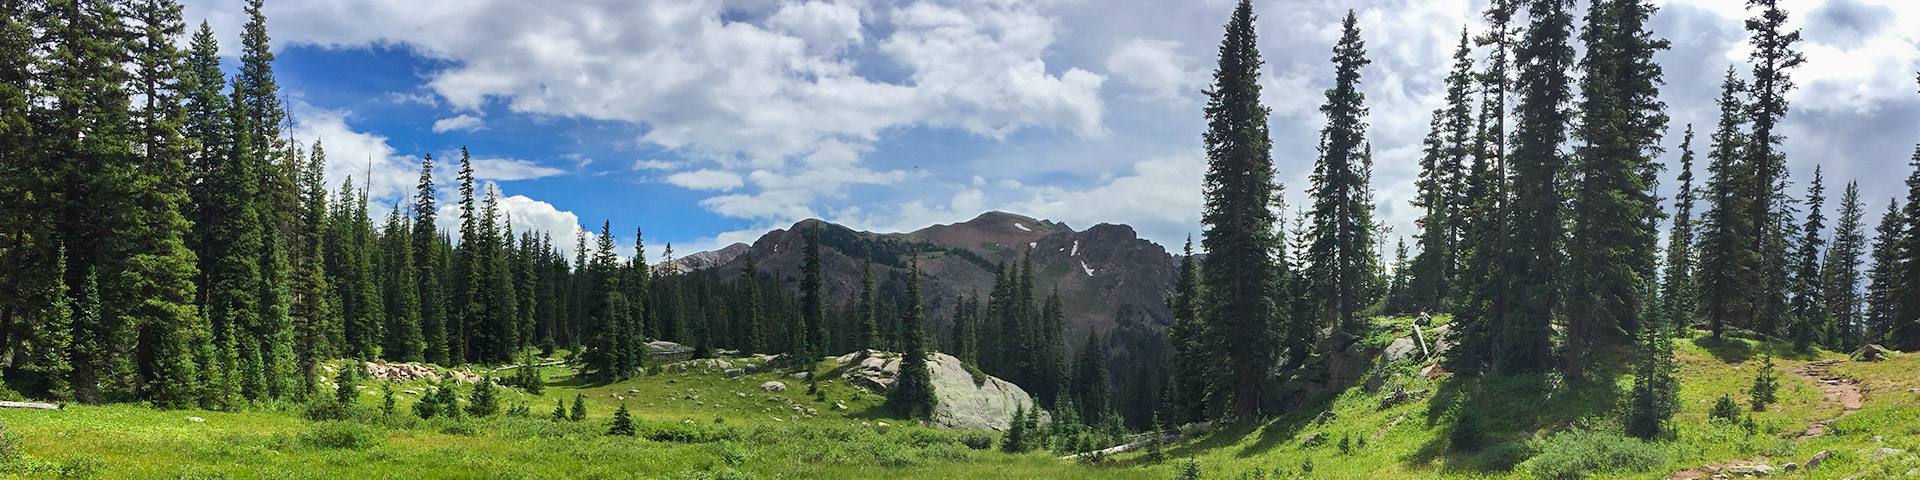 Best hikes in Colorado, Vail